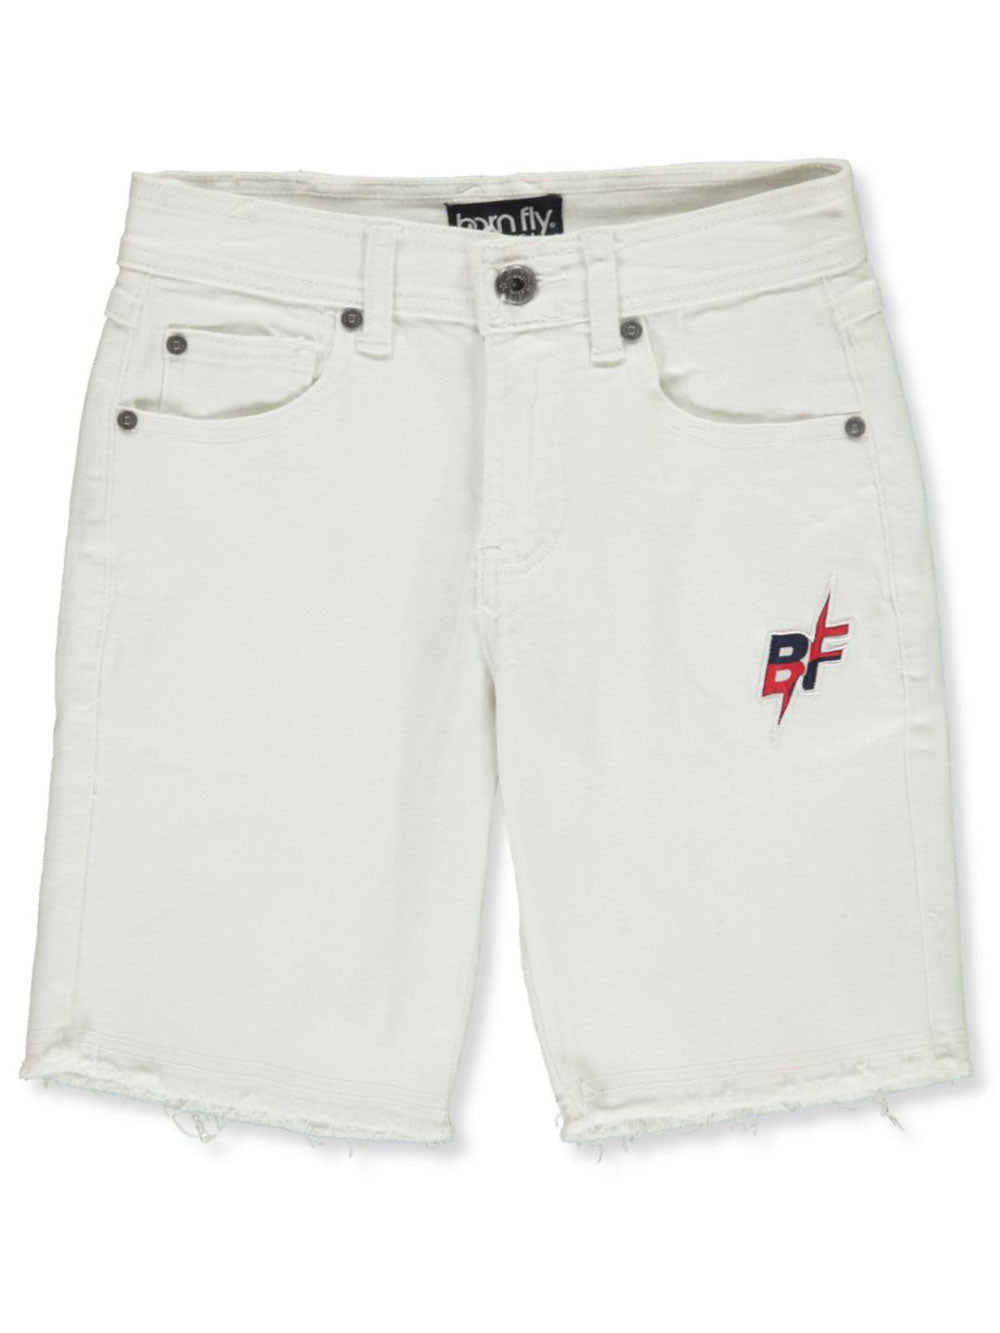 Born Fly Denim Shorts - FLY GUYZ